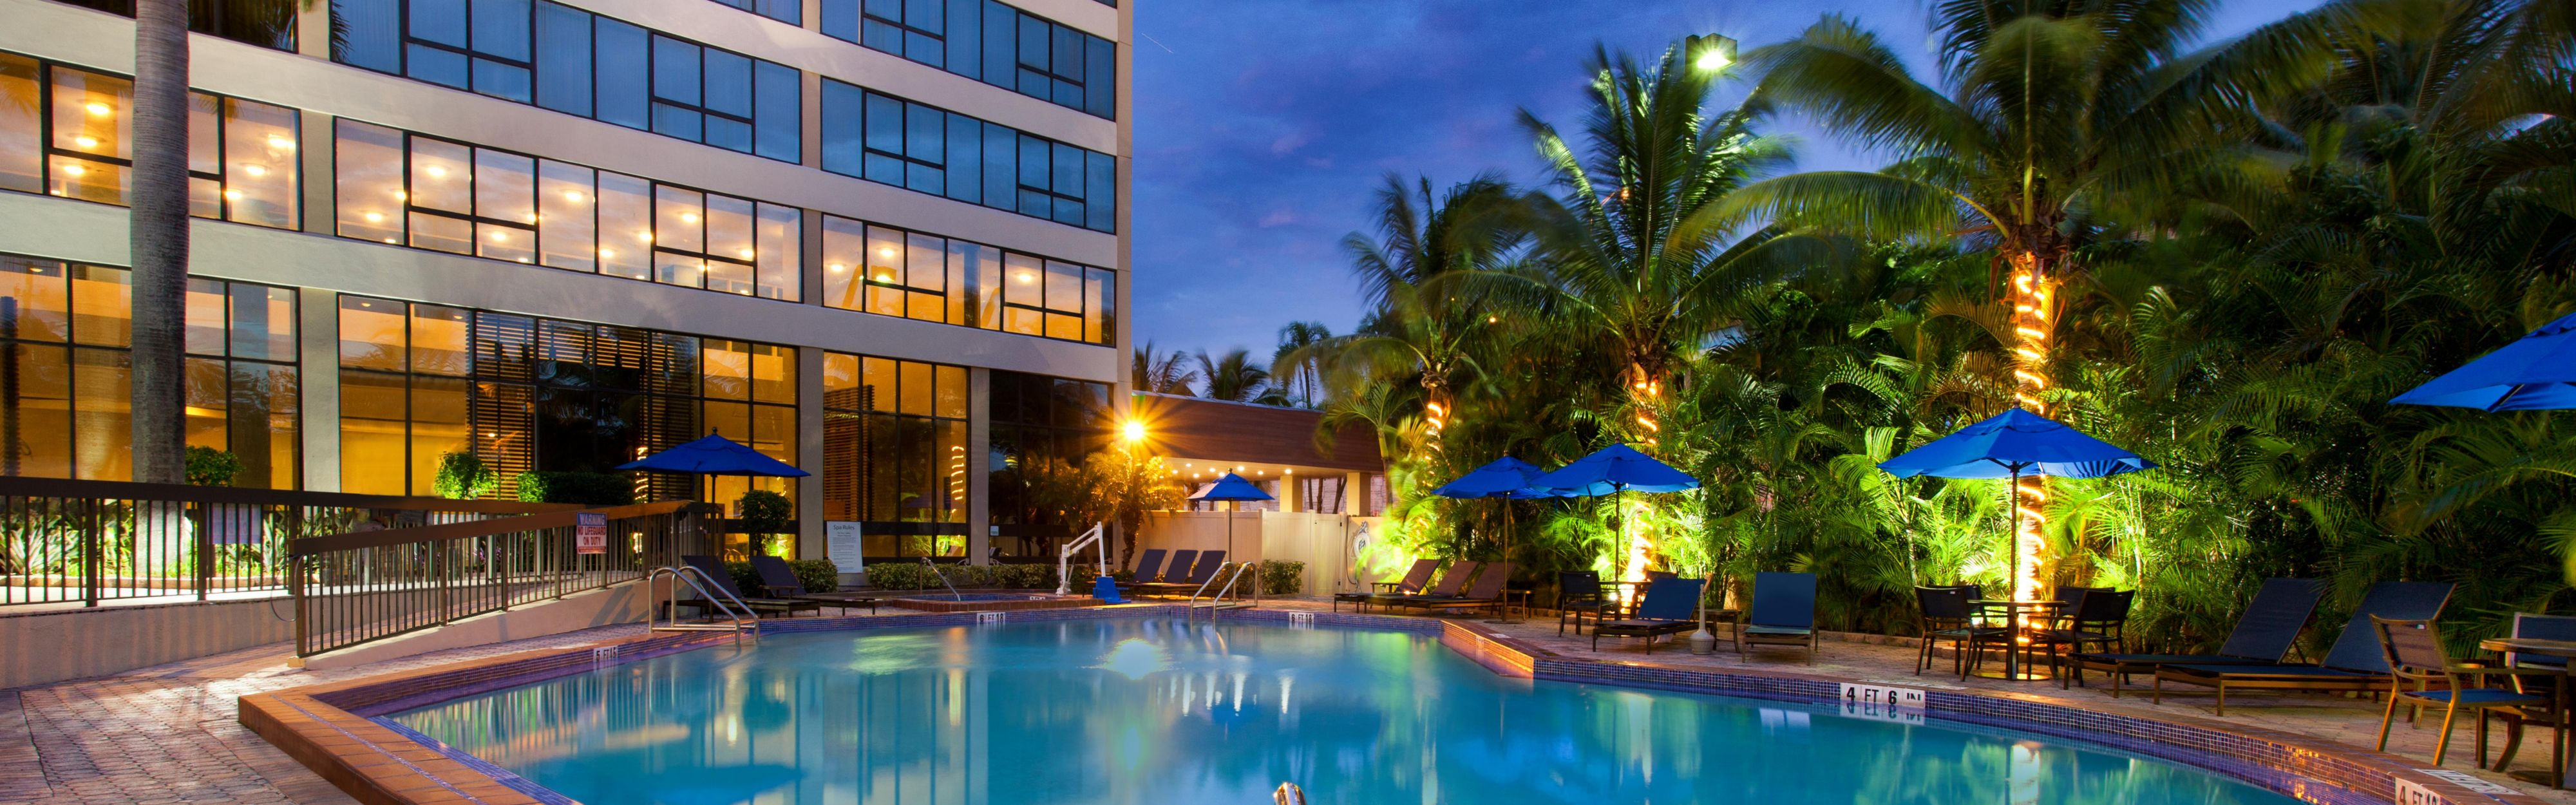 Holiday Inn Miami West Airport Area Coupons Near Me In